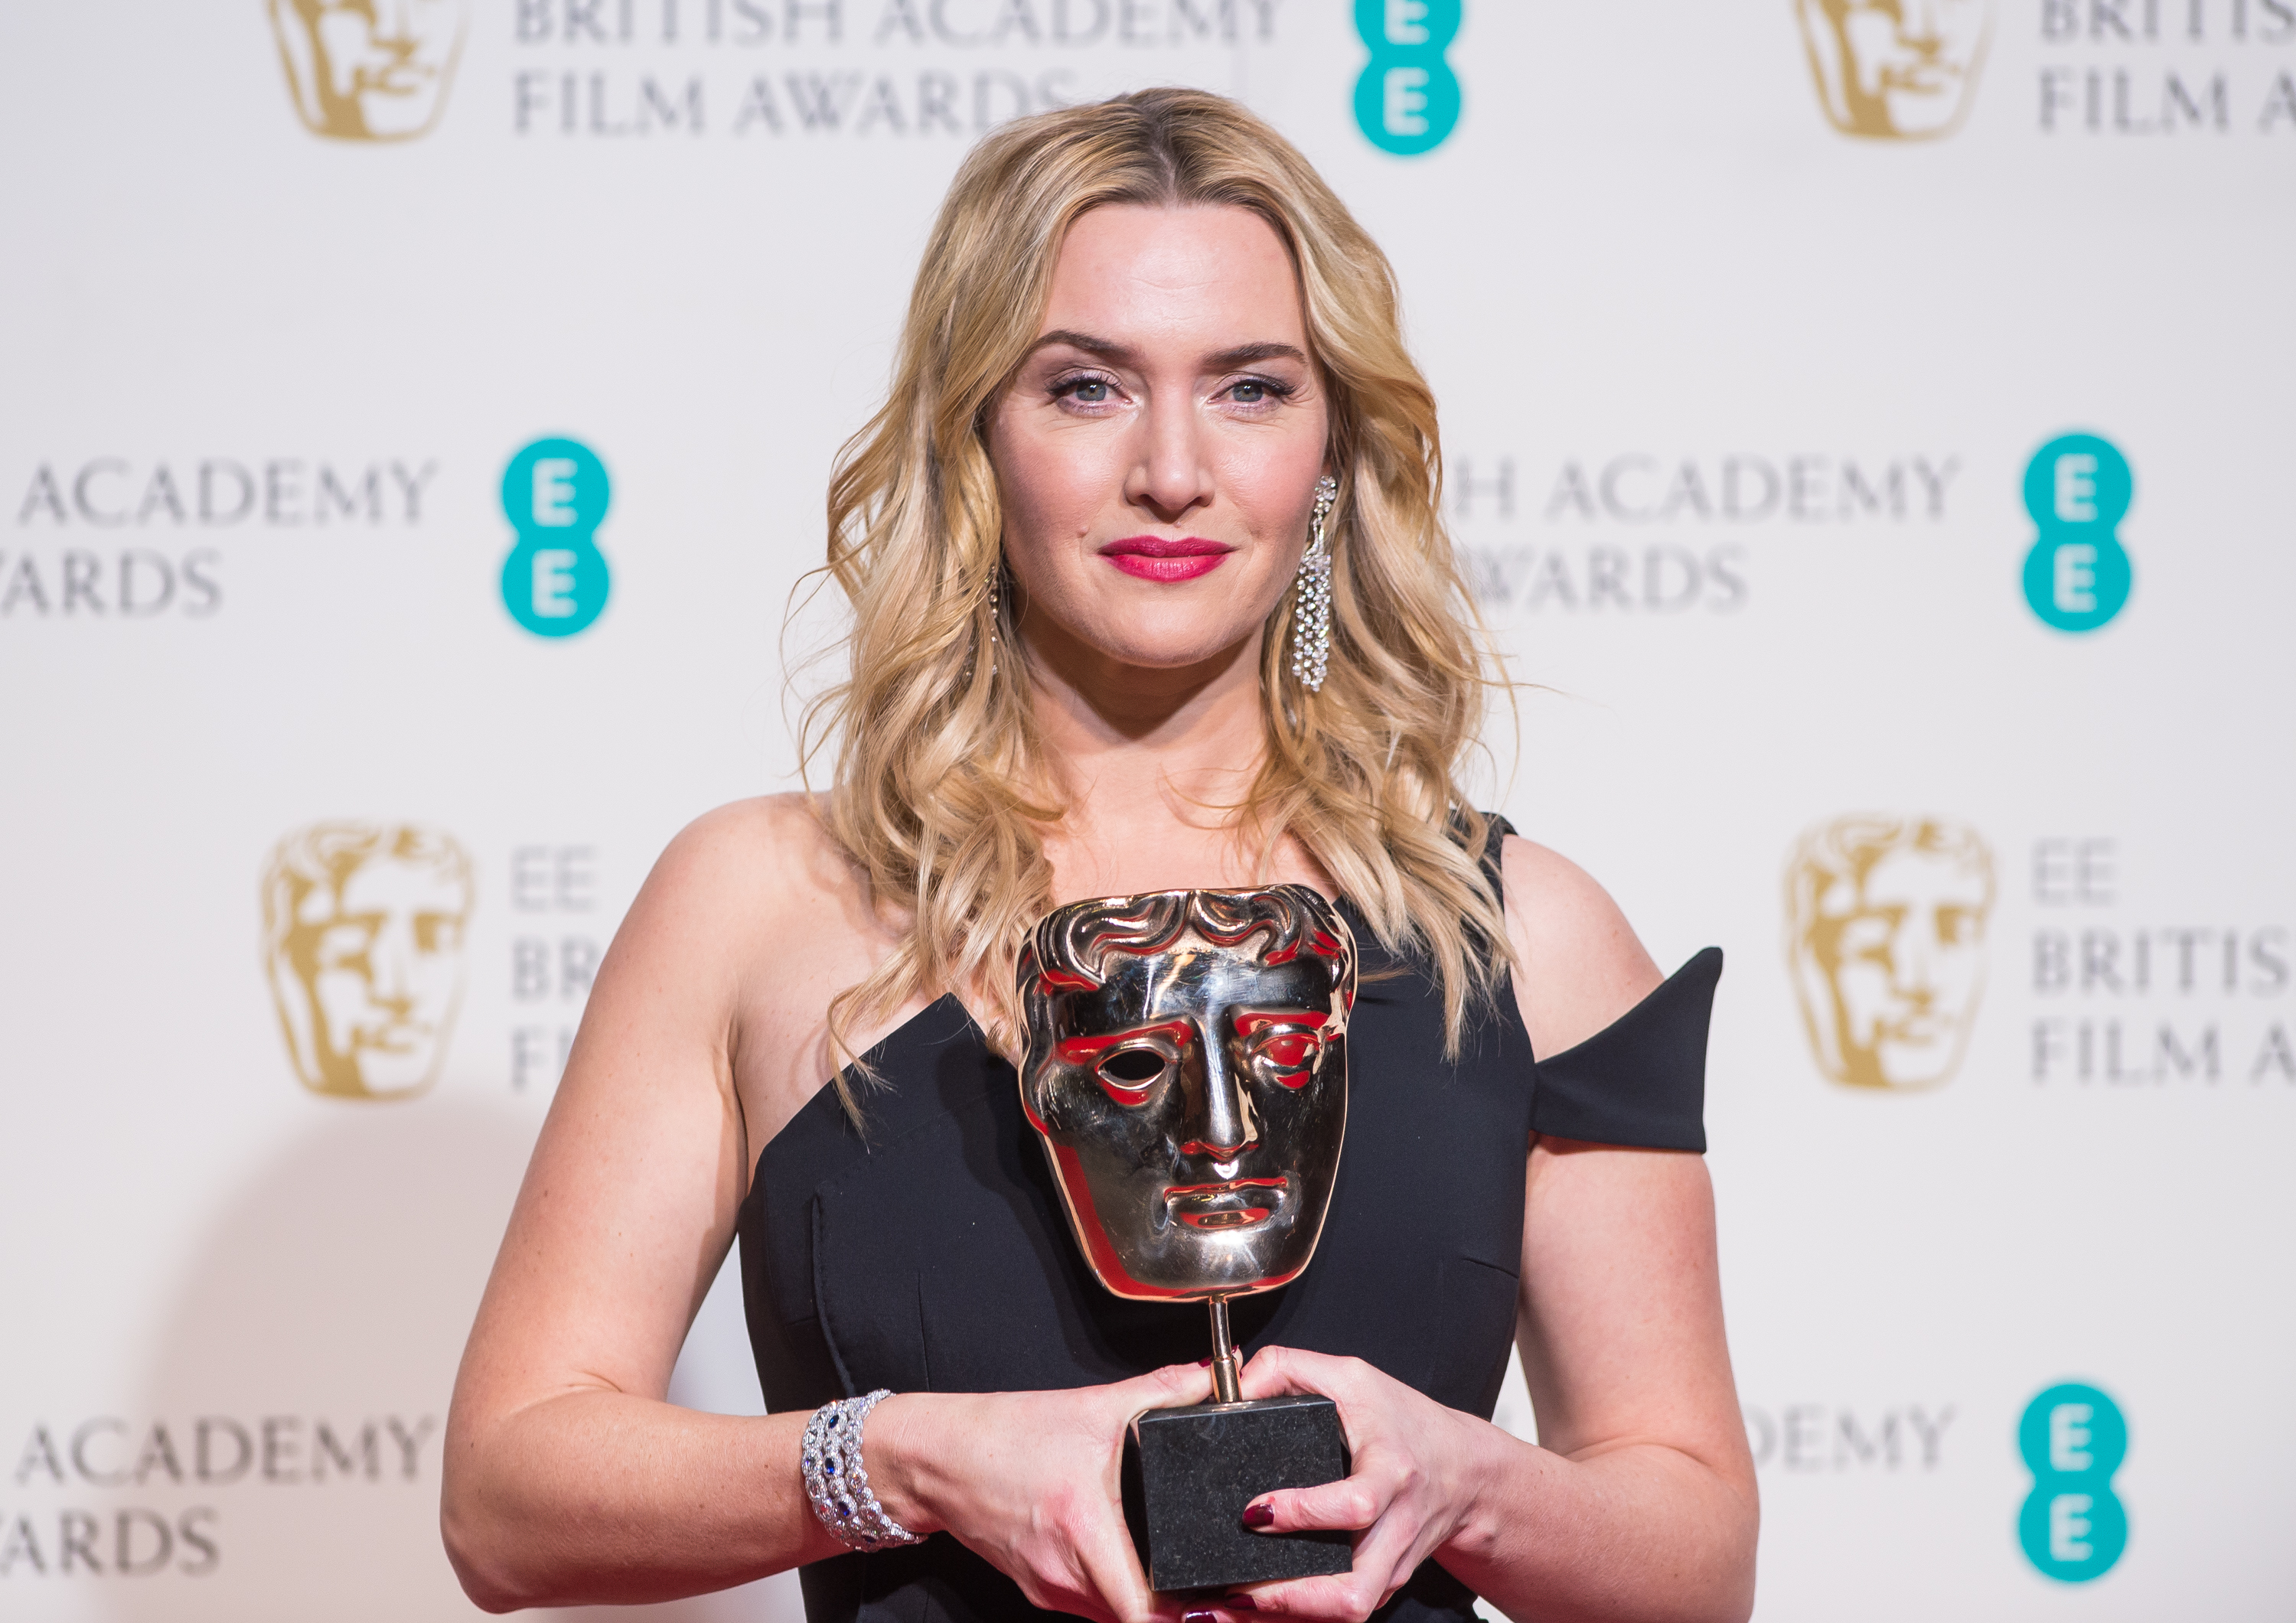 LONDON, ENGLAND - FEBRUARY 14: Kate Winslet poses in the winners room at the EE British Academy Film Awards at The Royal Opera House on February 14, 2016 in London, England. (Photo by Samir Hussein/WireImage)